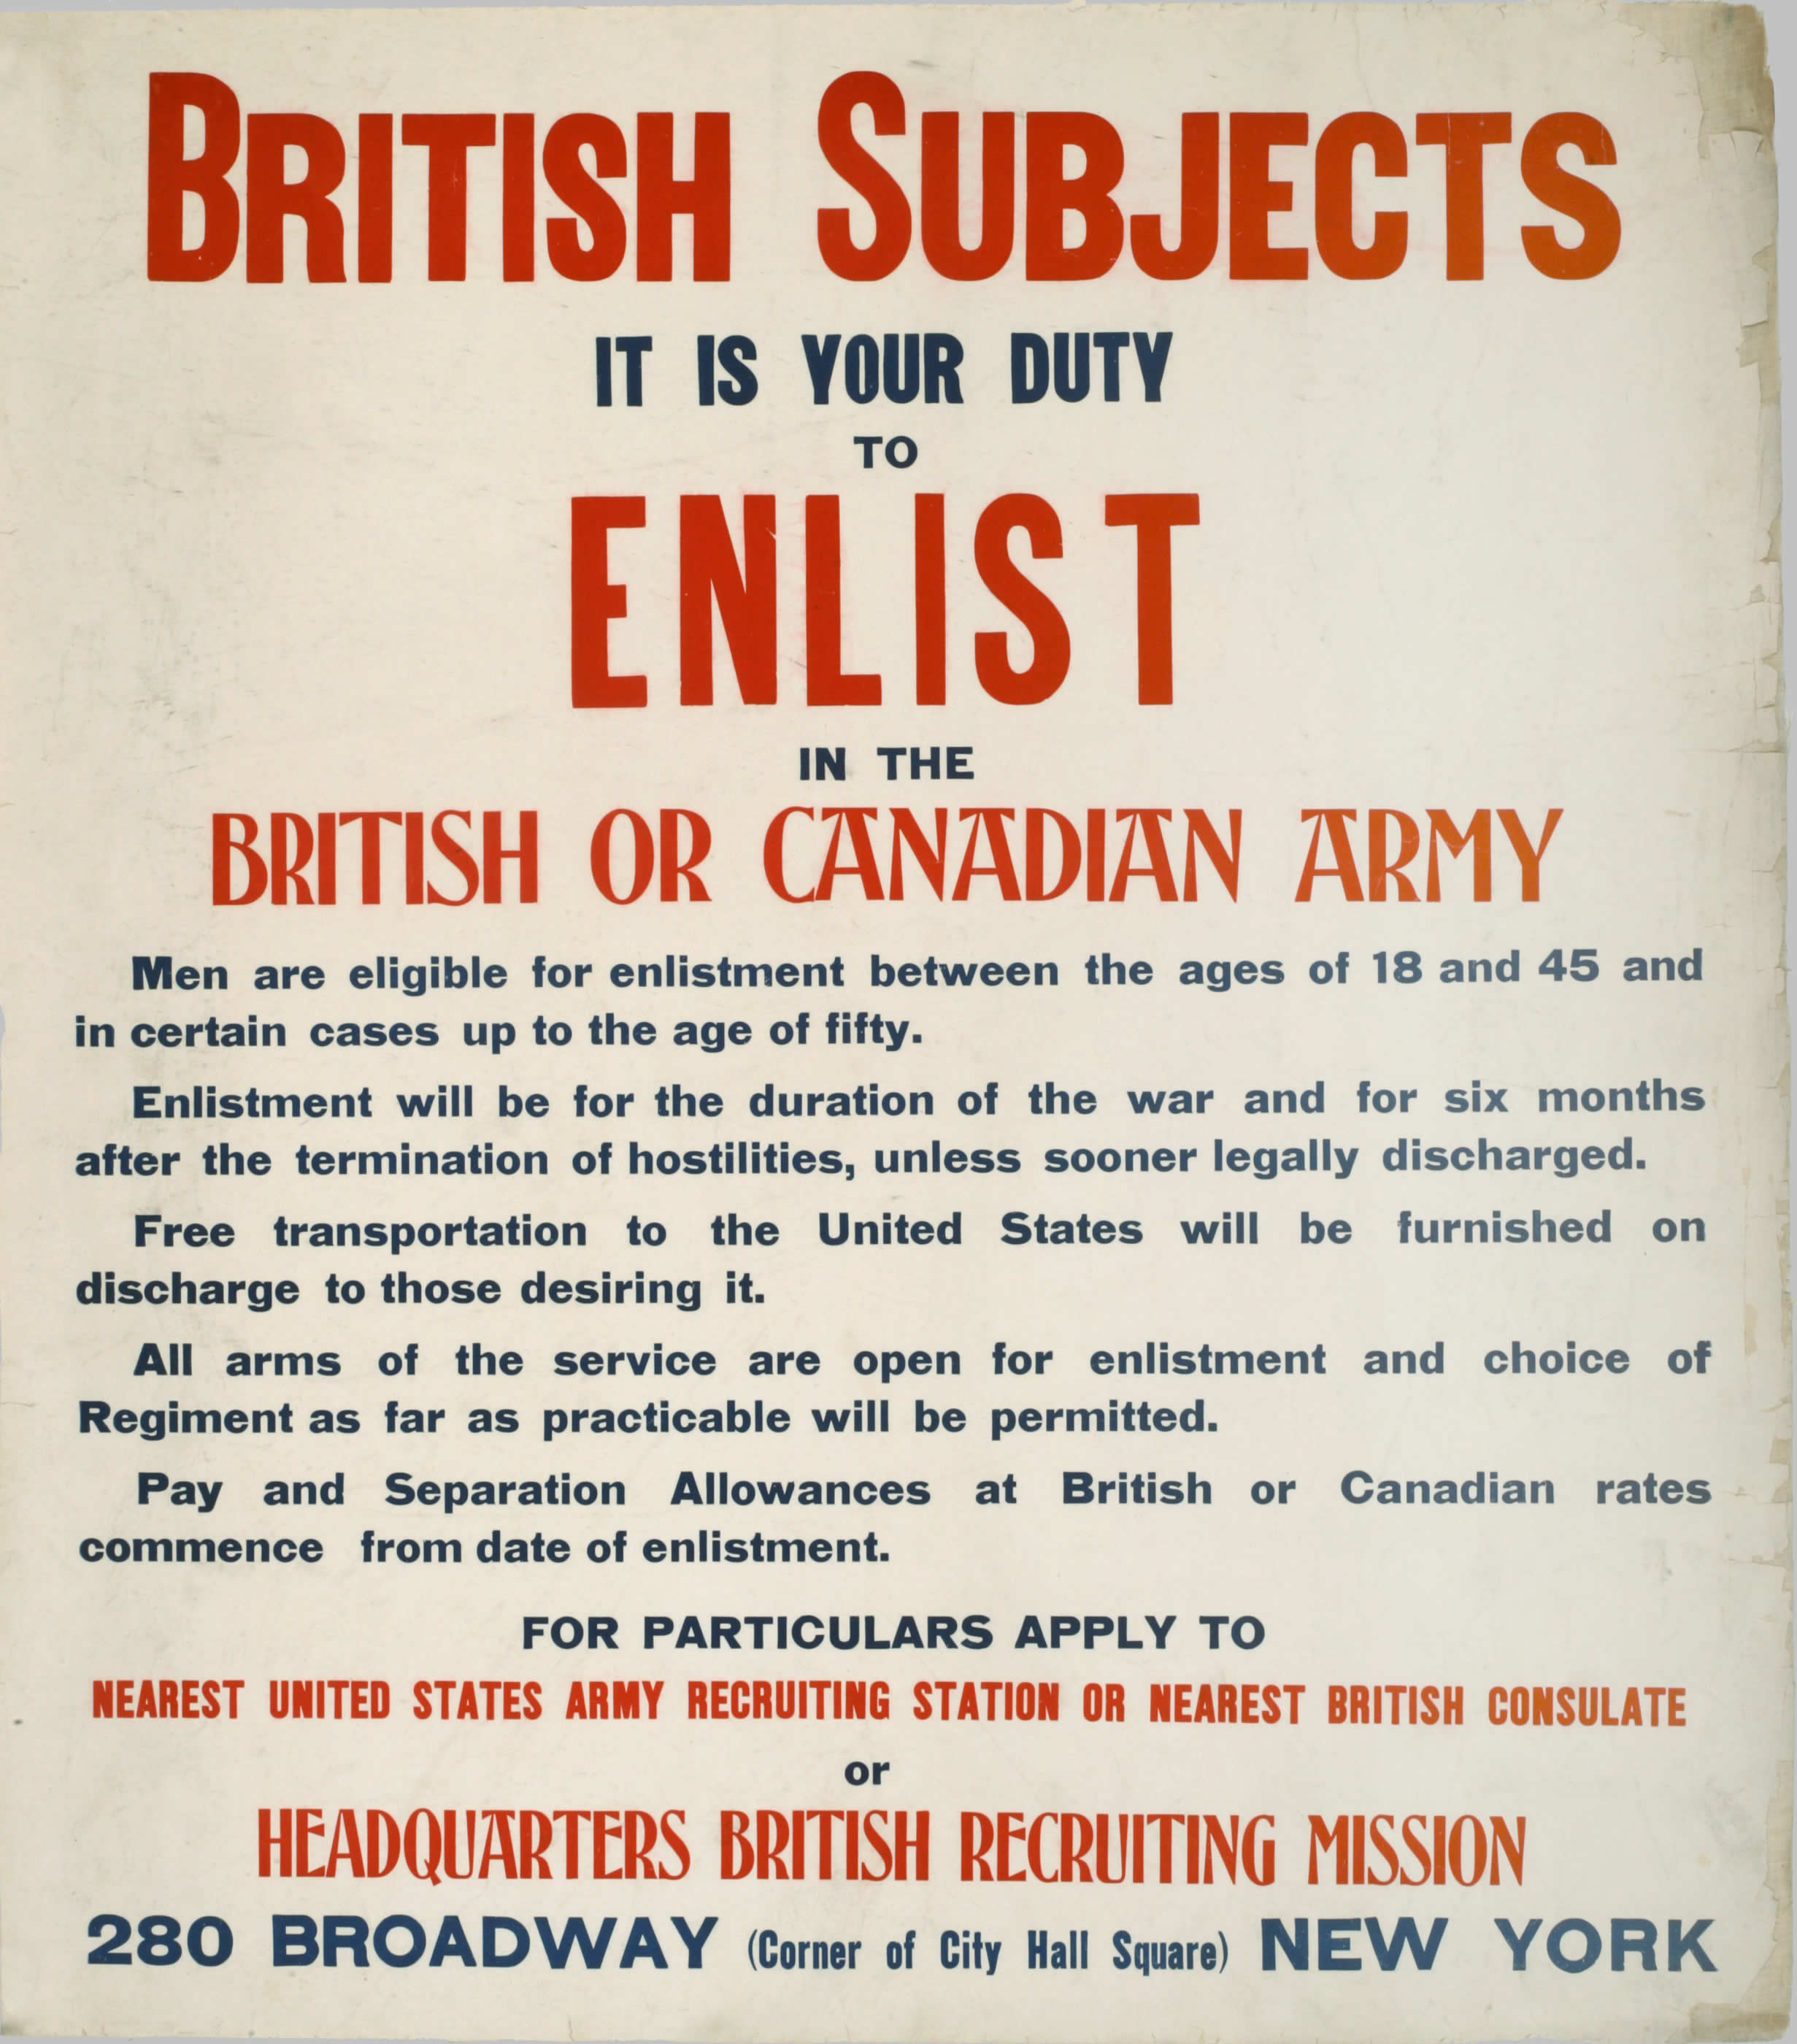 Enlist in the British or Canadian Army